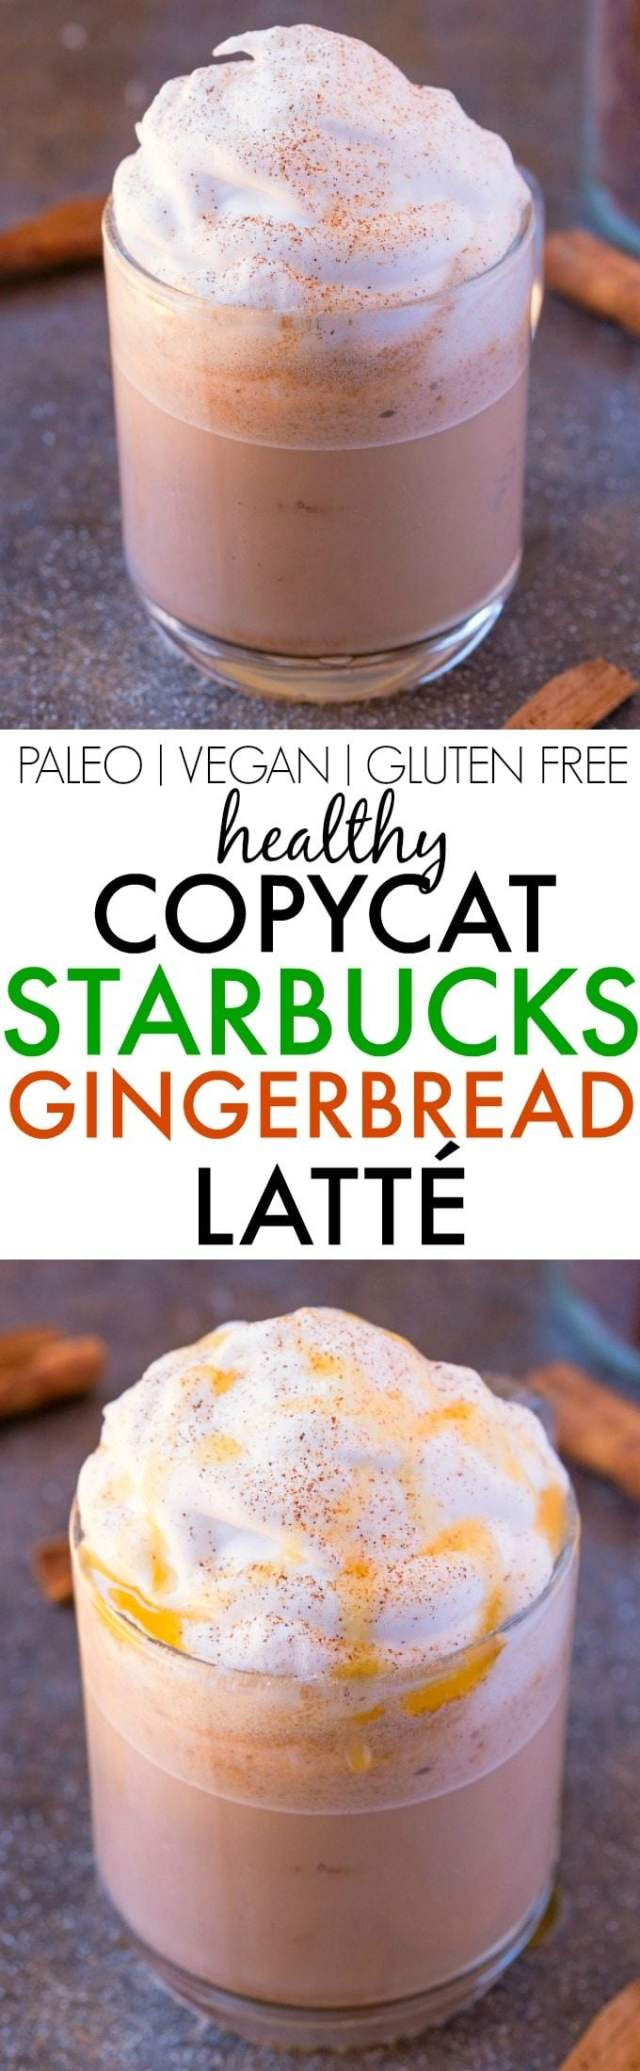 Healthy COPYCAT STARBUCKS Gingerbread Latte- Made with NO sugar, NO dairy and NO nasties, it's 100% better for you and SO much cheaper! {vegan, gluten free, dairy free, paleo recipe}- thebigmansworld.com